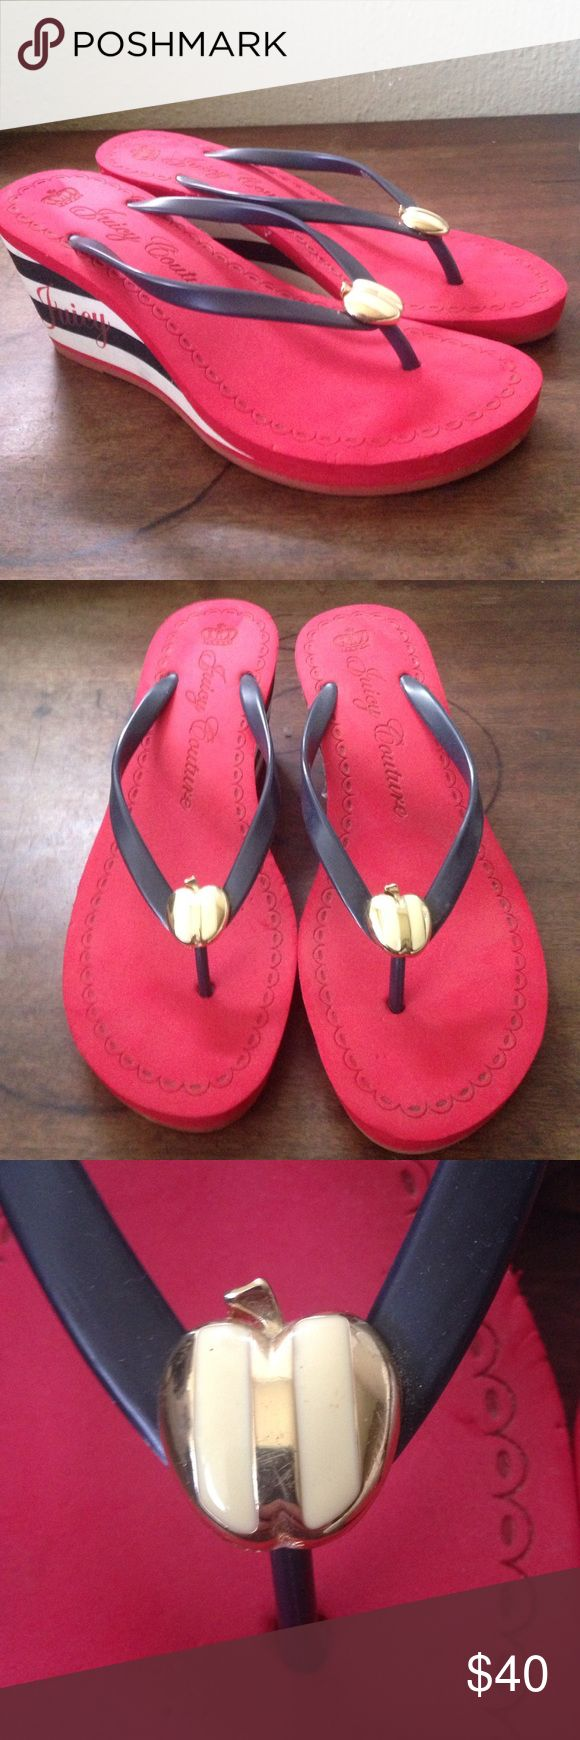 Juicy Couture High-heeled Flip Flops Good condition. They have dust from been in storage for a long time. Never worn outside. Juicy Couture Shoes Sandals